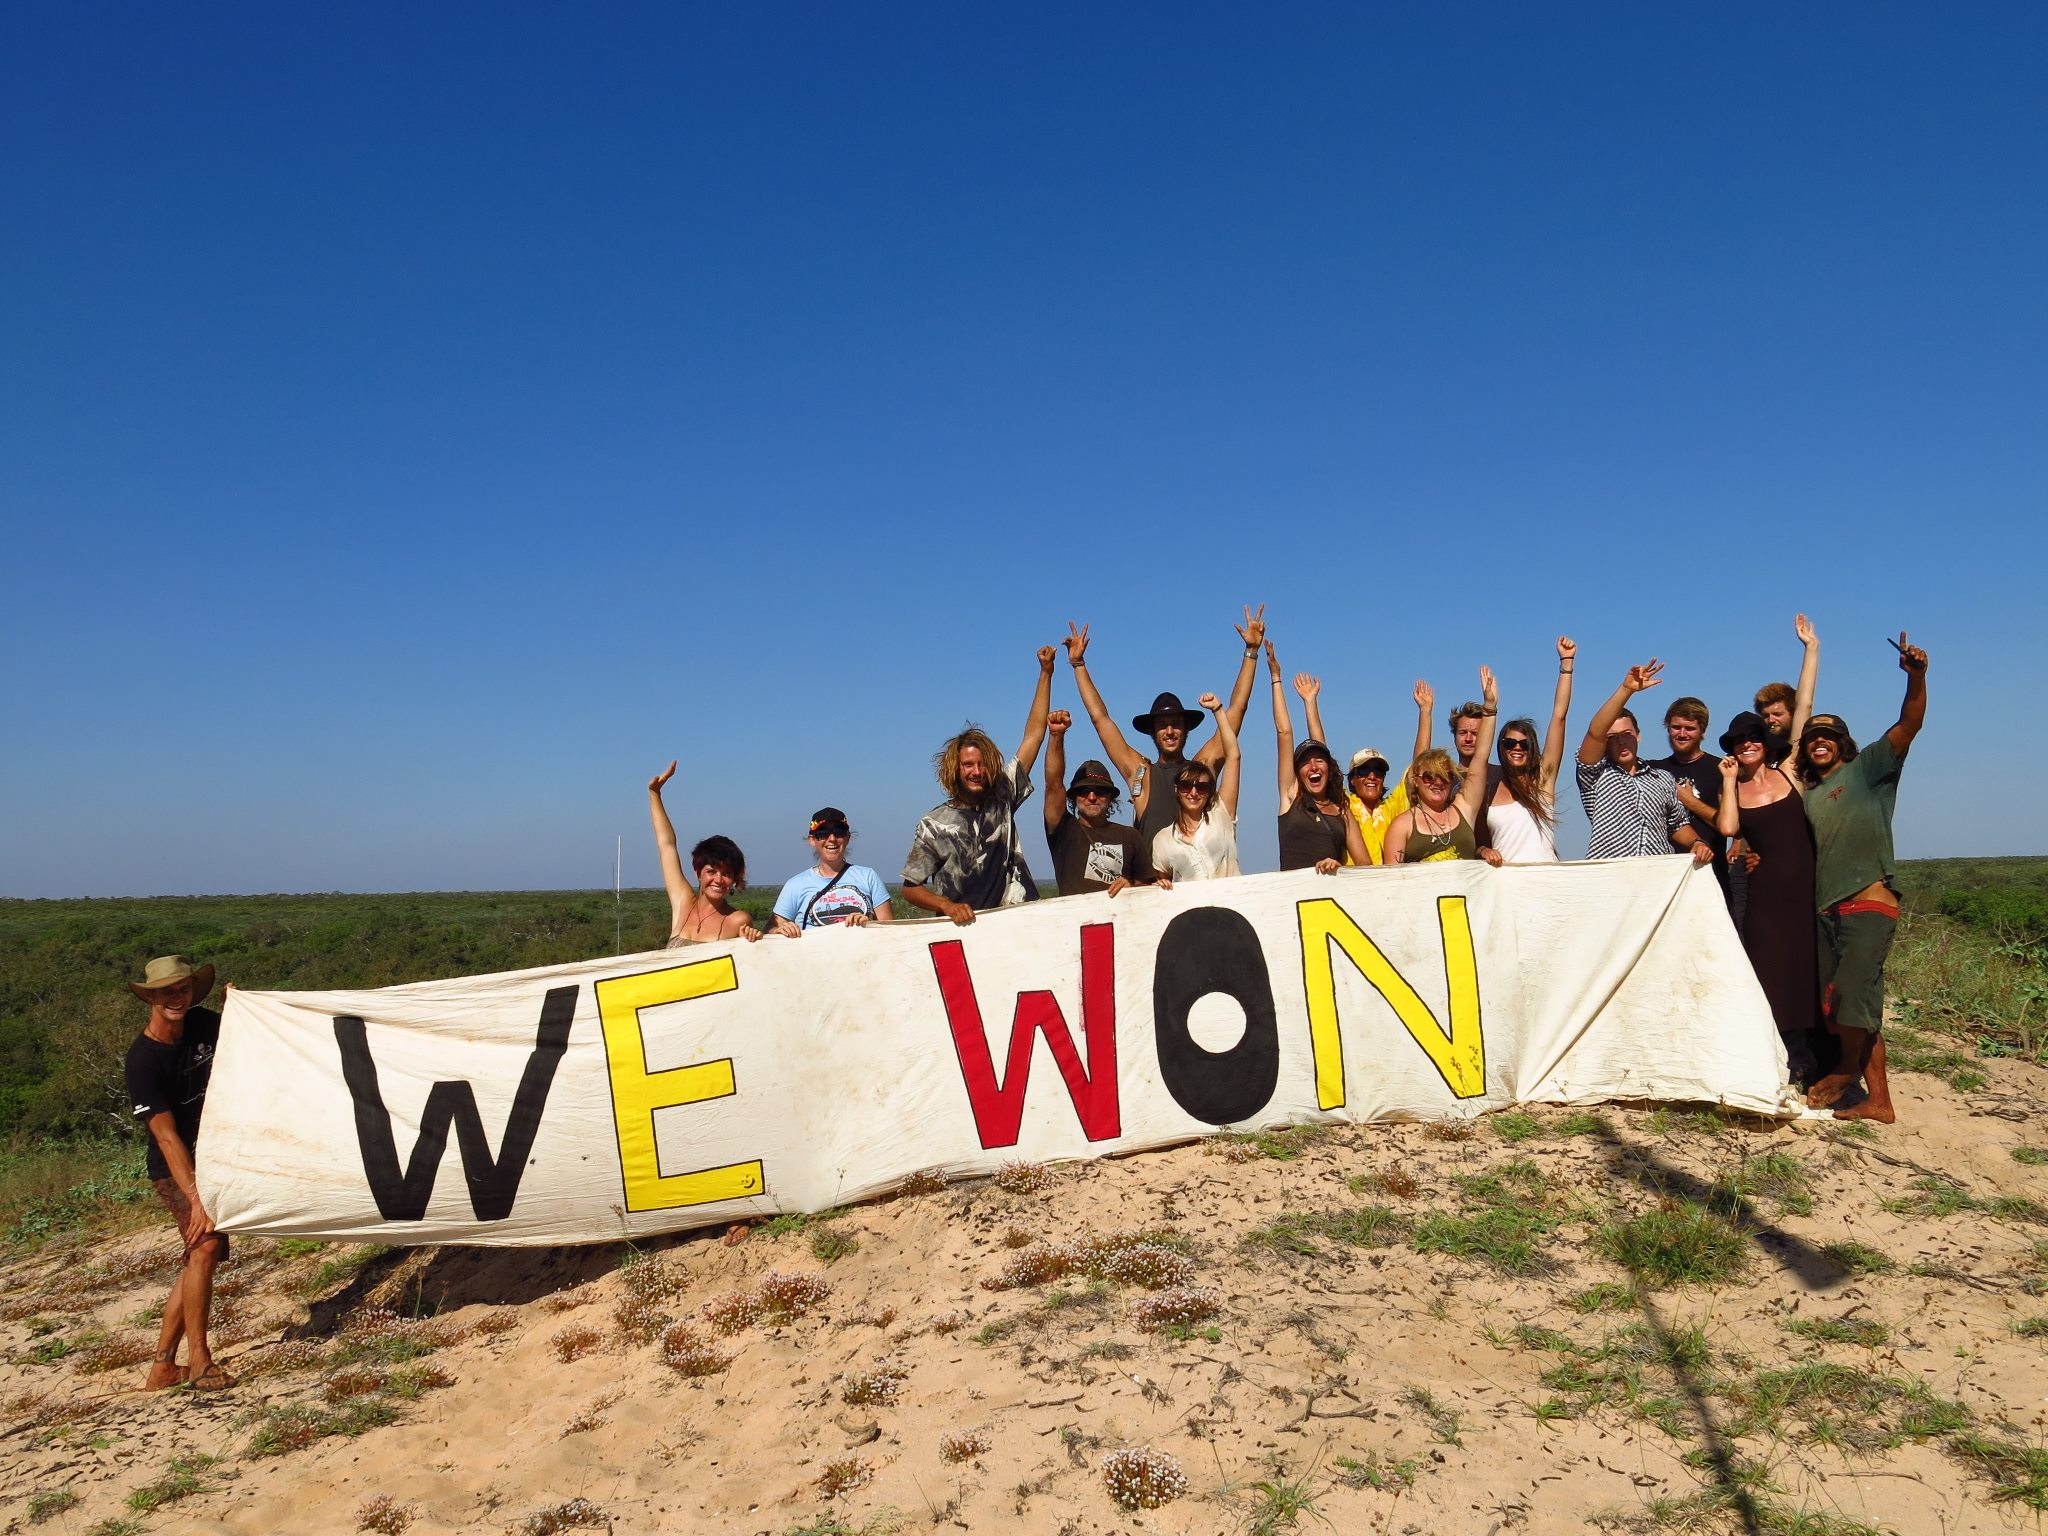 A vision for climate civil resistance